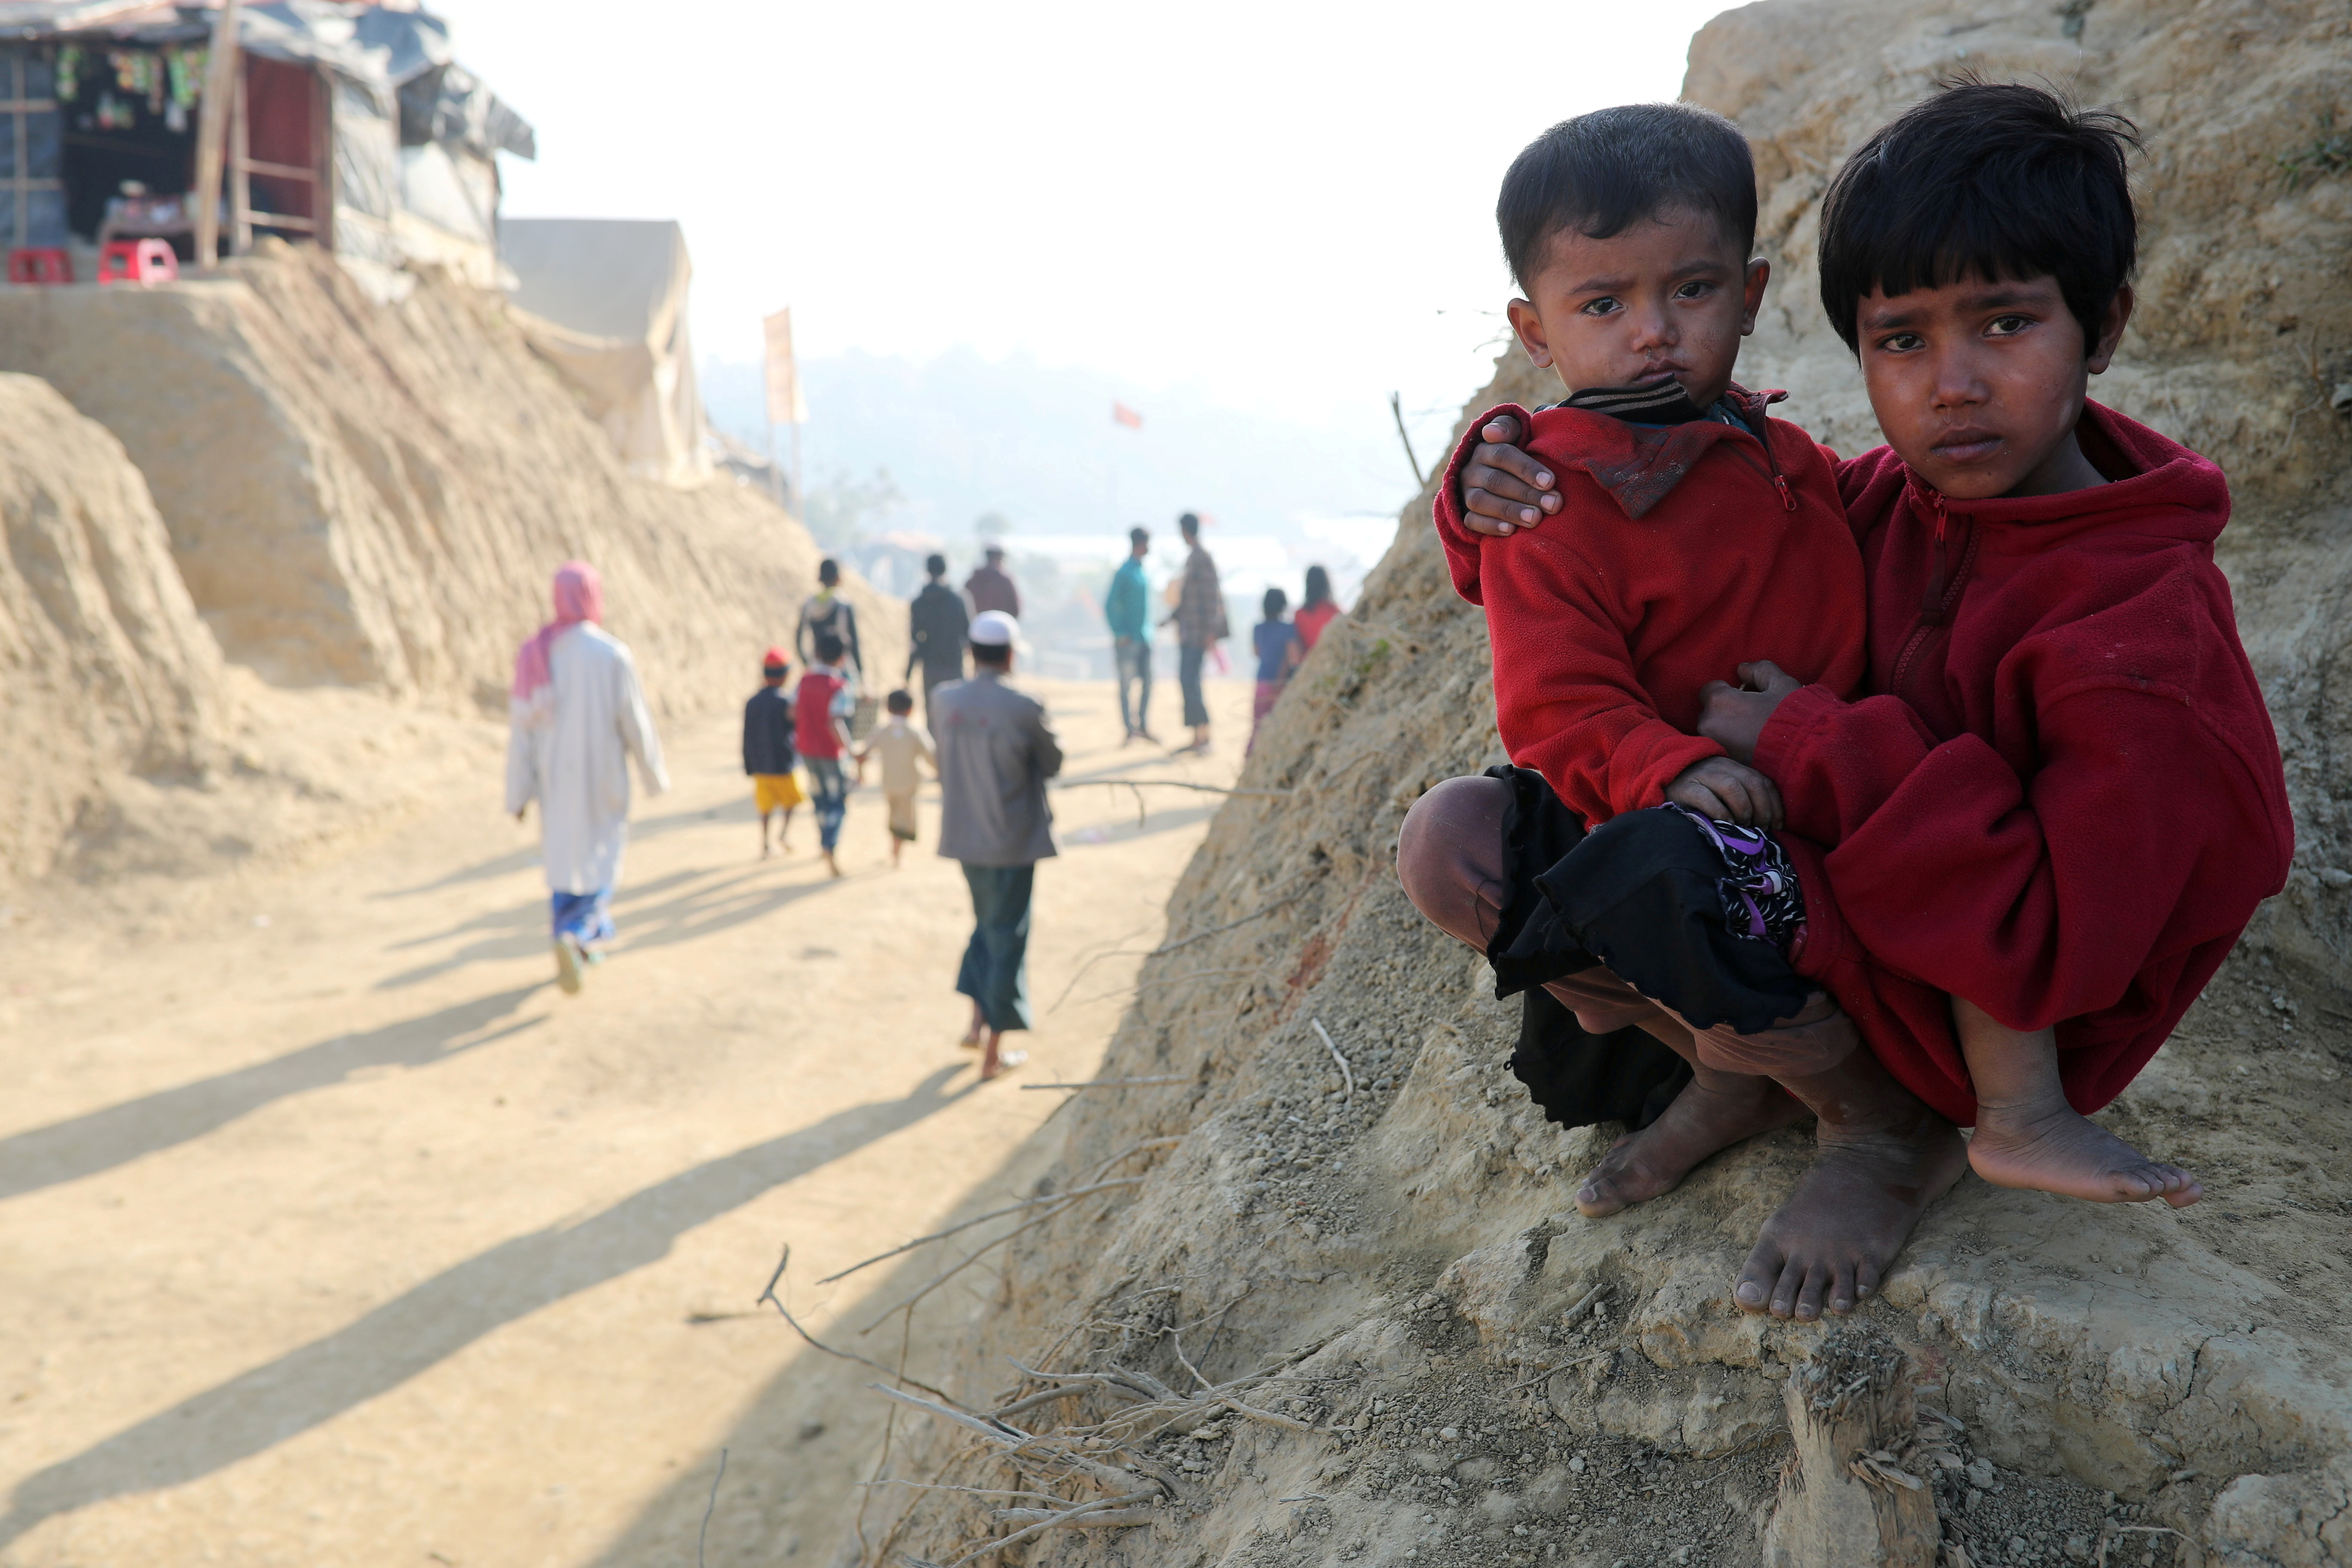 Rohingya refugee children look on at the Jamtoli camp in the morning in Cox's Bazar, Bangladesh, January 22, 2018. REUTERS/Mohammad Ponir Hossain